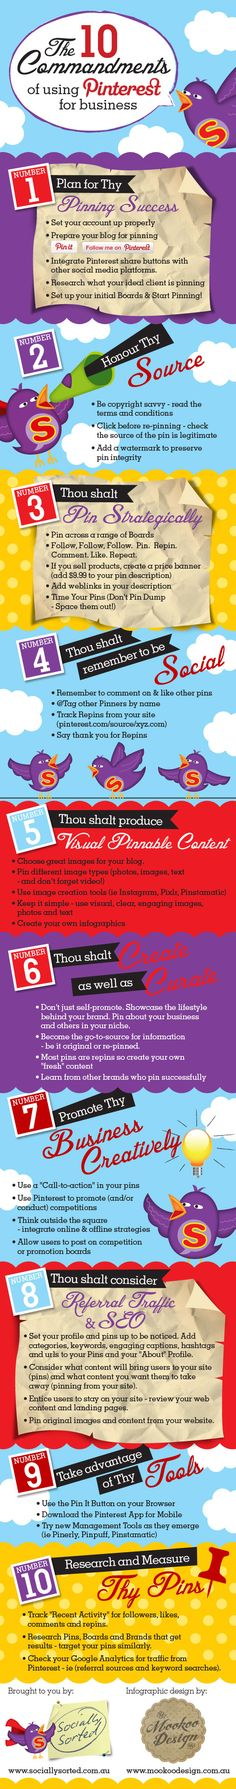 The 10 Commandments of Pinterest - www.sociallysorted.com.au (as featured on www.amyporterfield.com)